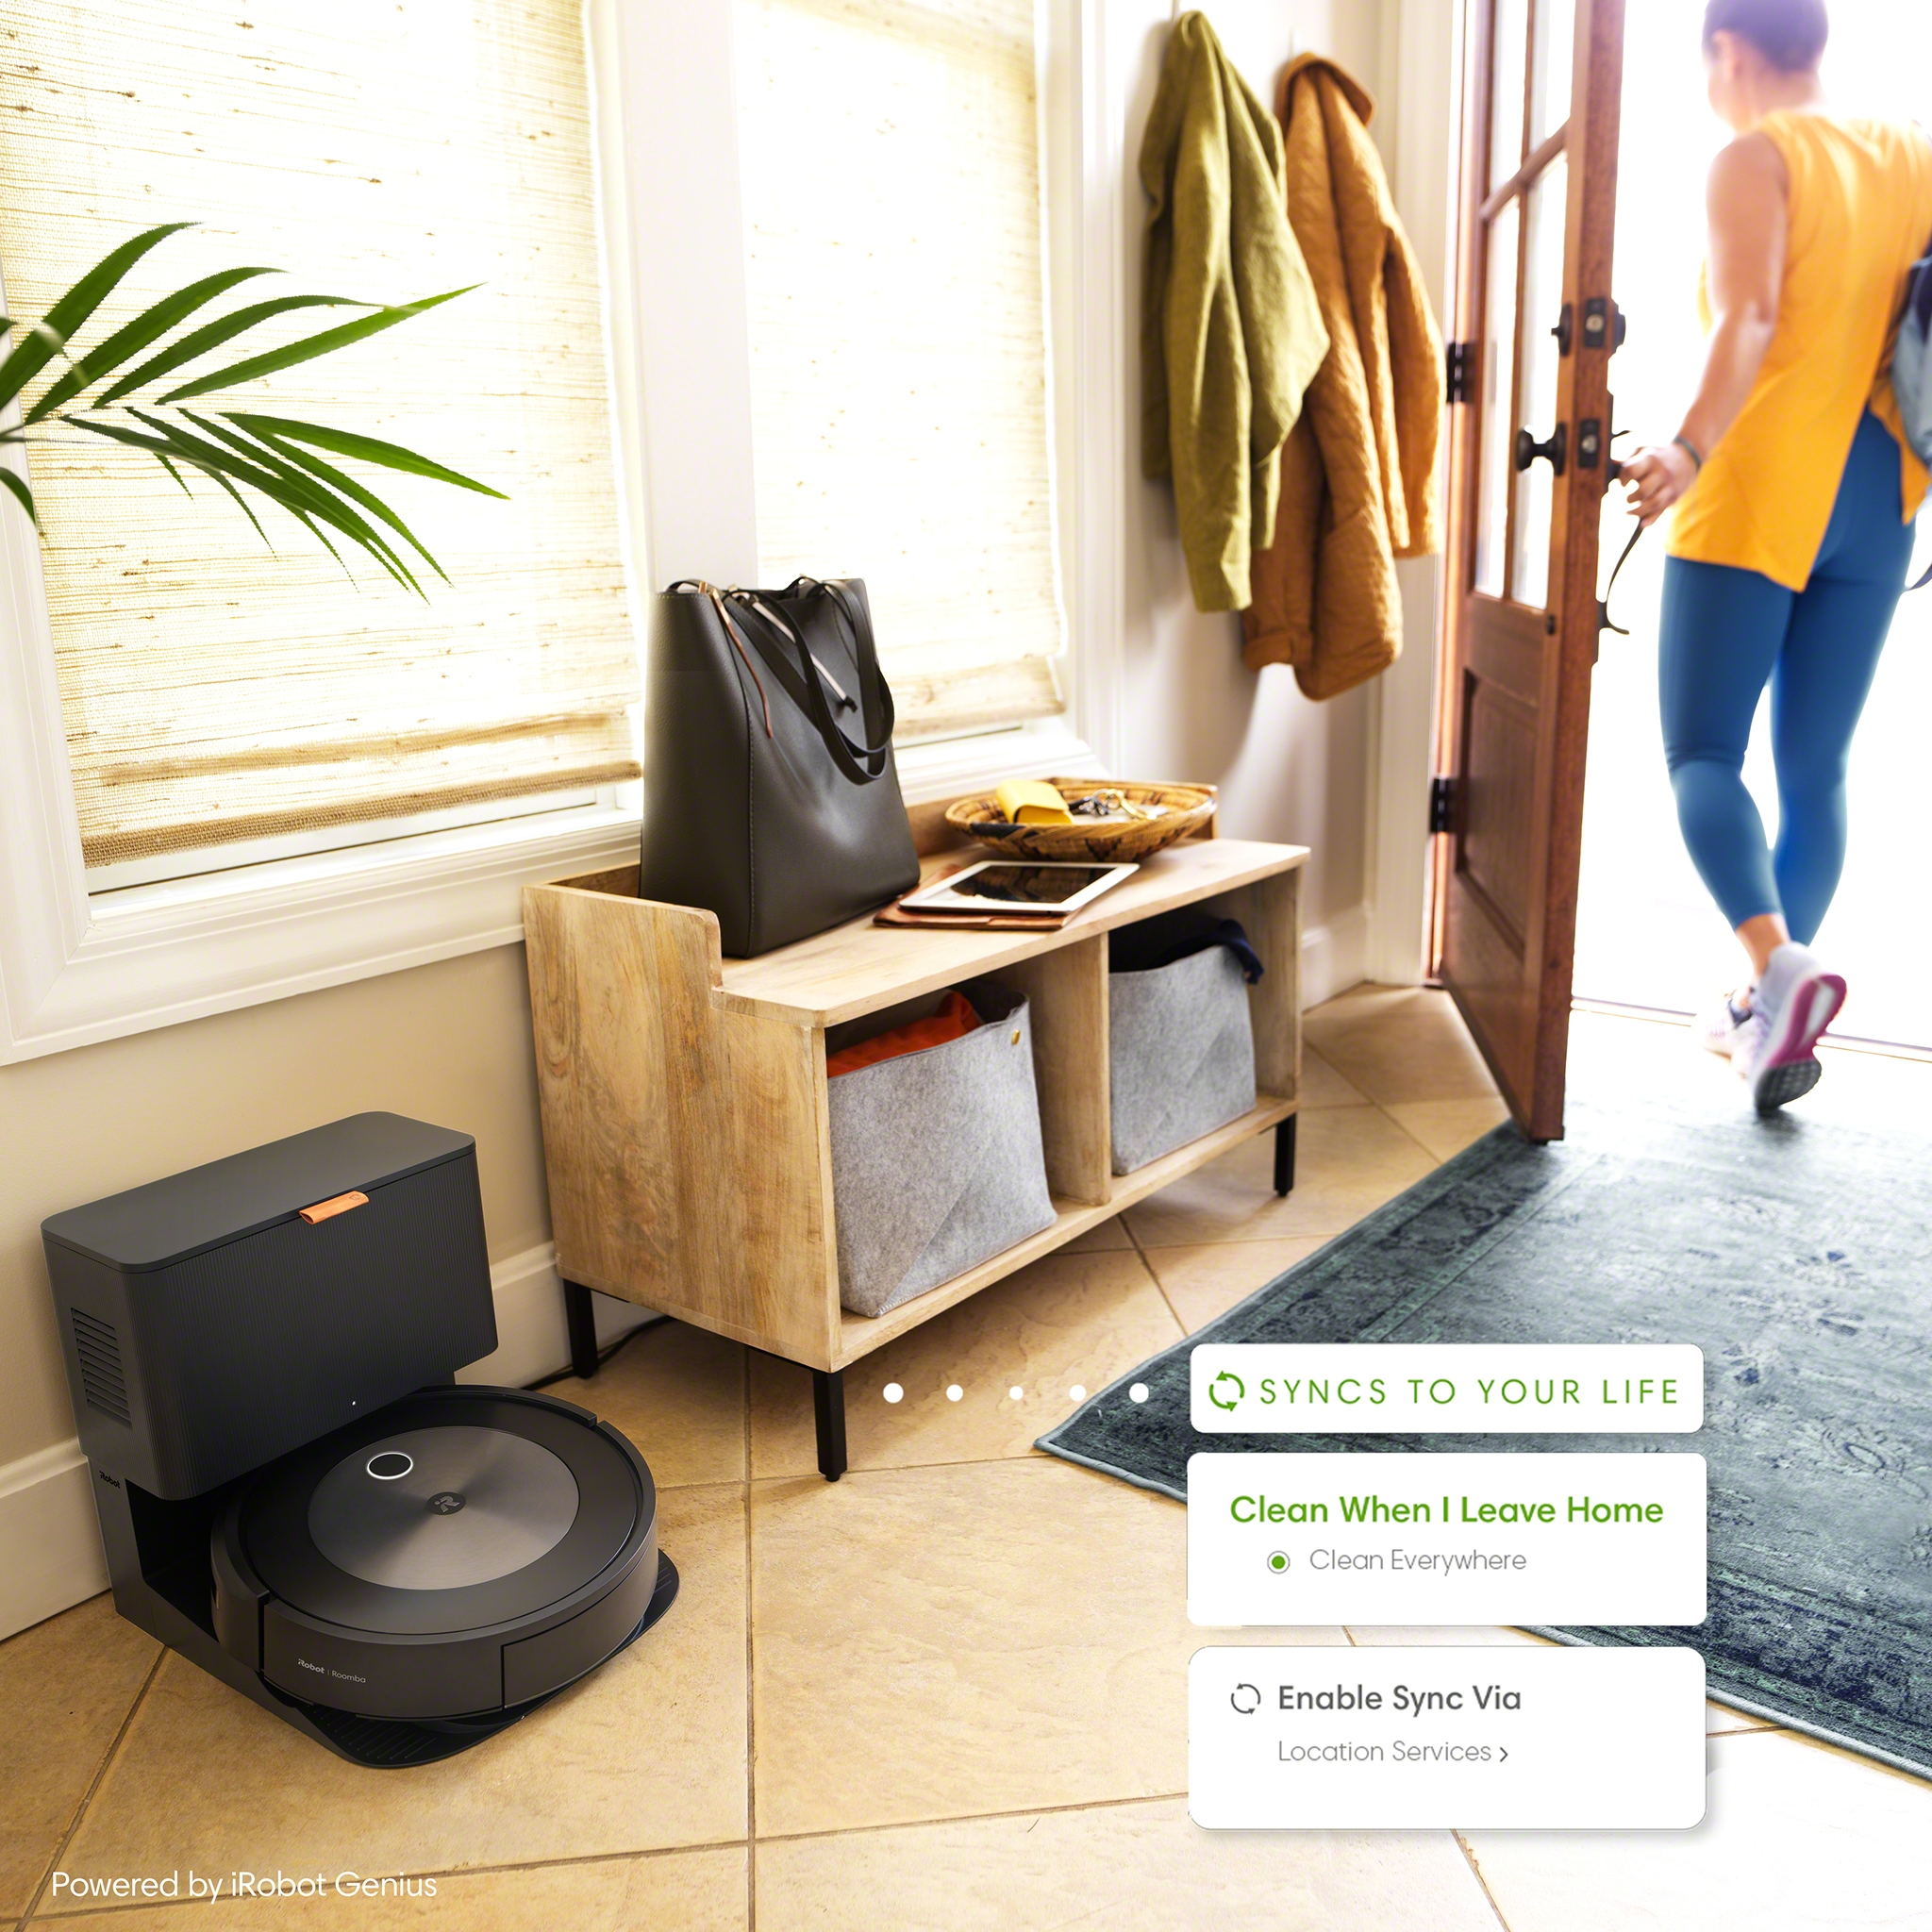 Using a phone's location services, users can now create a defined boundary around their home so that the robot starts cleaning automatically when they leave home and stop when they return.